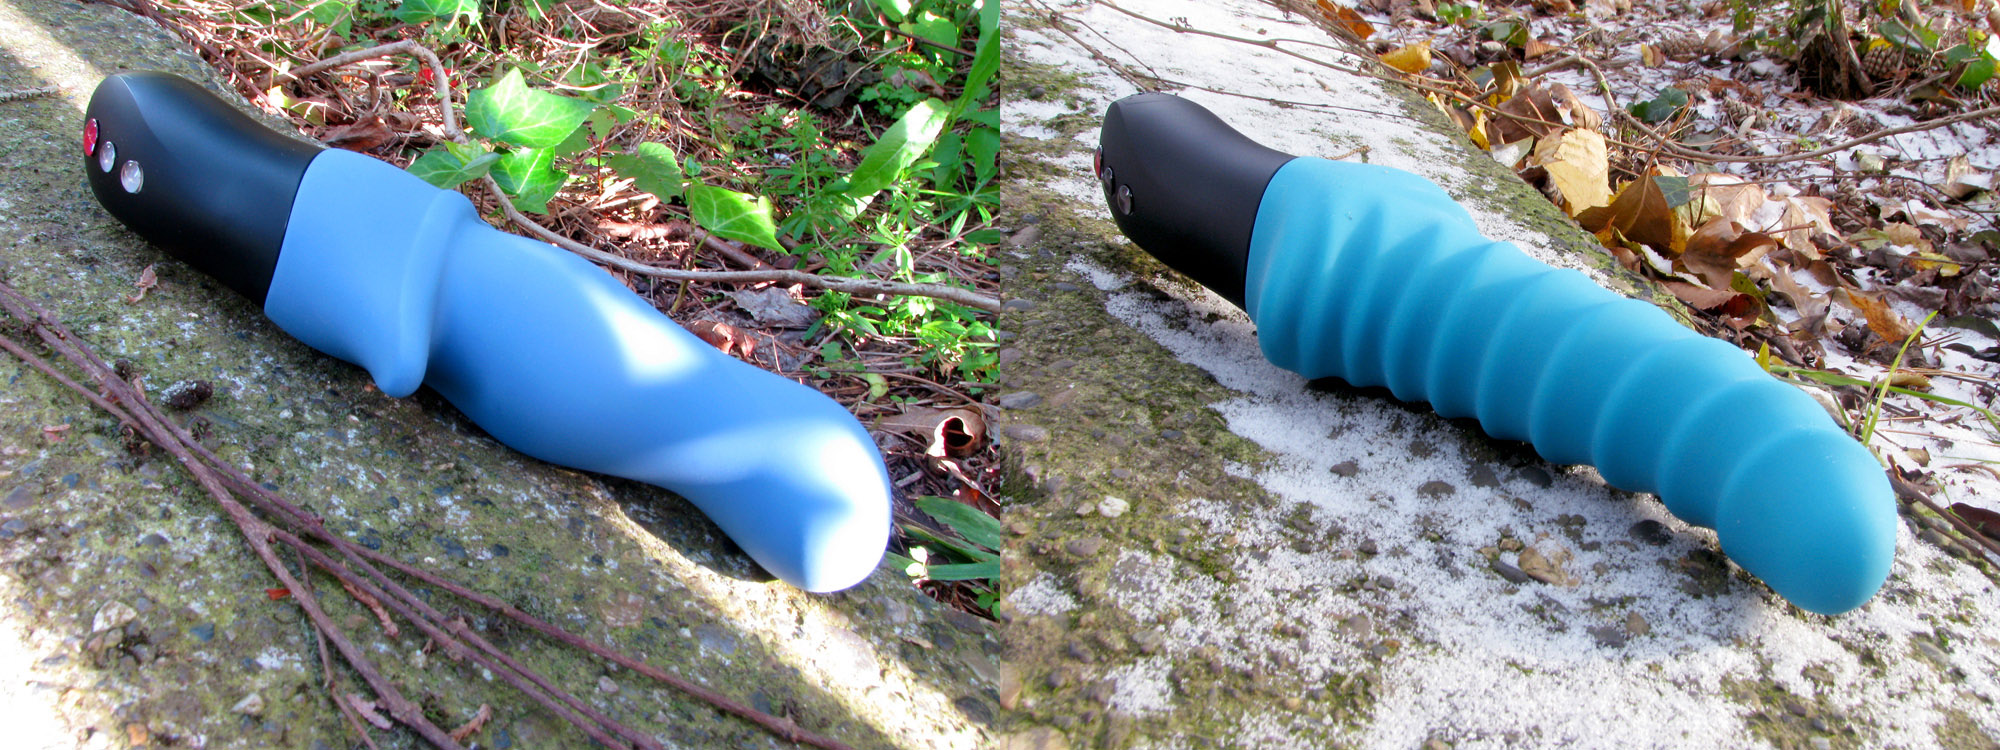 Review Fun Factory Stronic Zwei And Drei Pulsator Sex Toys-6687